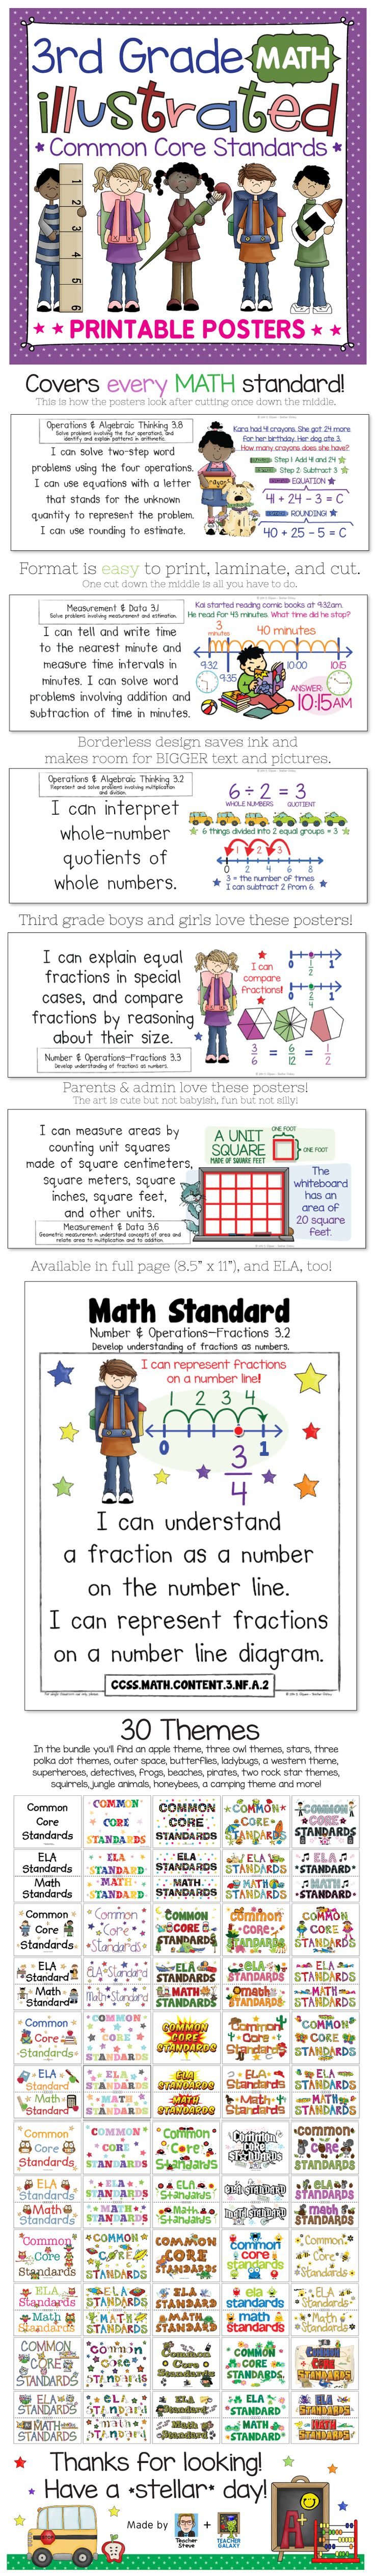 Common Core Standards posters for 3rd grade math - every standard is illustrated and rewritten in kid-friendly language. I recently updated the posters to make the text and images bigger and to include some awesome new fonts by Kimberly Geswein and clip art by Scrappin' Doodles,  3 AM Teacher, and more talented creatives! Full page and ELA versions of these posters are in my store, too! $